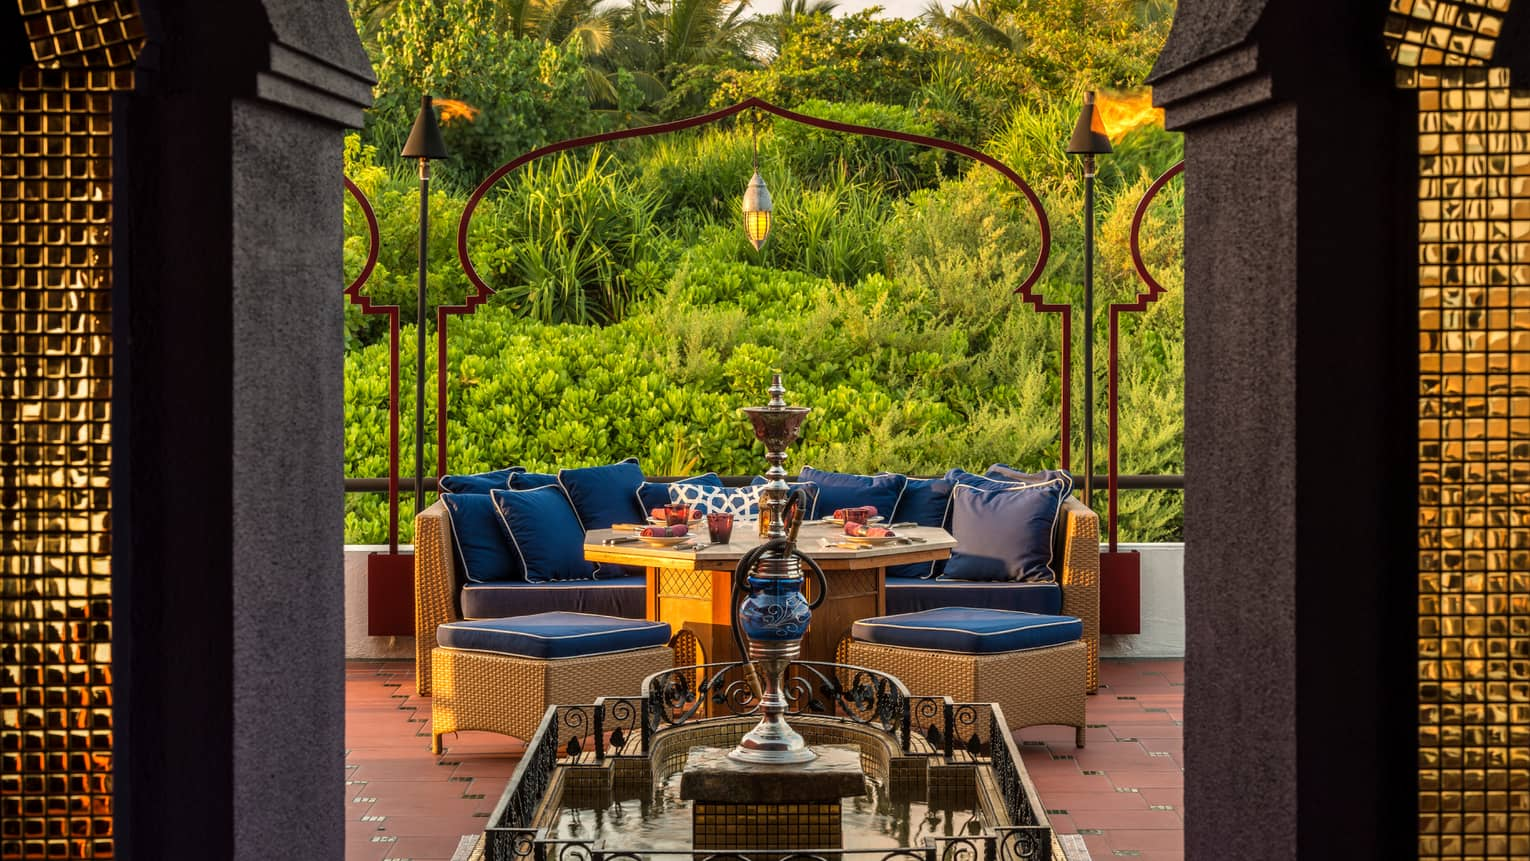 Shisha pipe on platform in front of plush blue patio sofa, dining table, tropical gardens